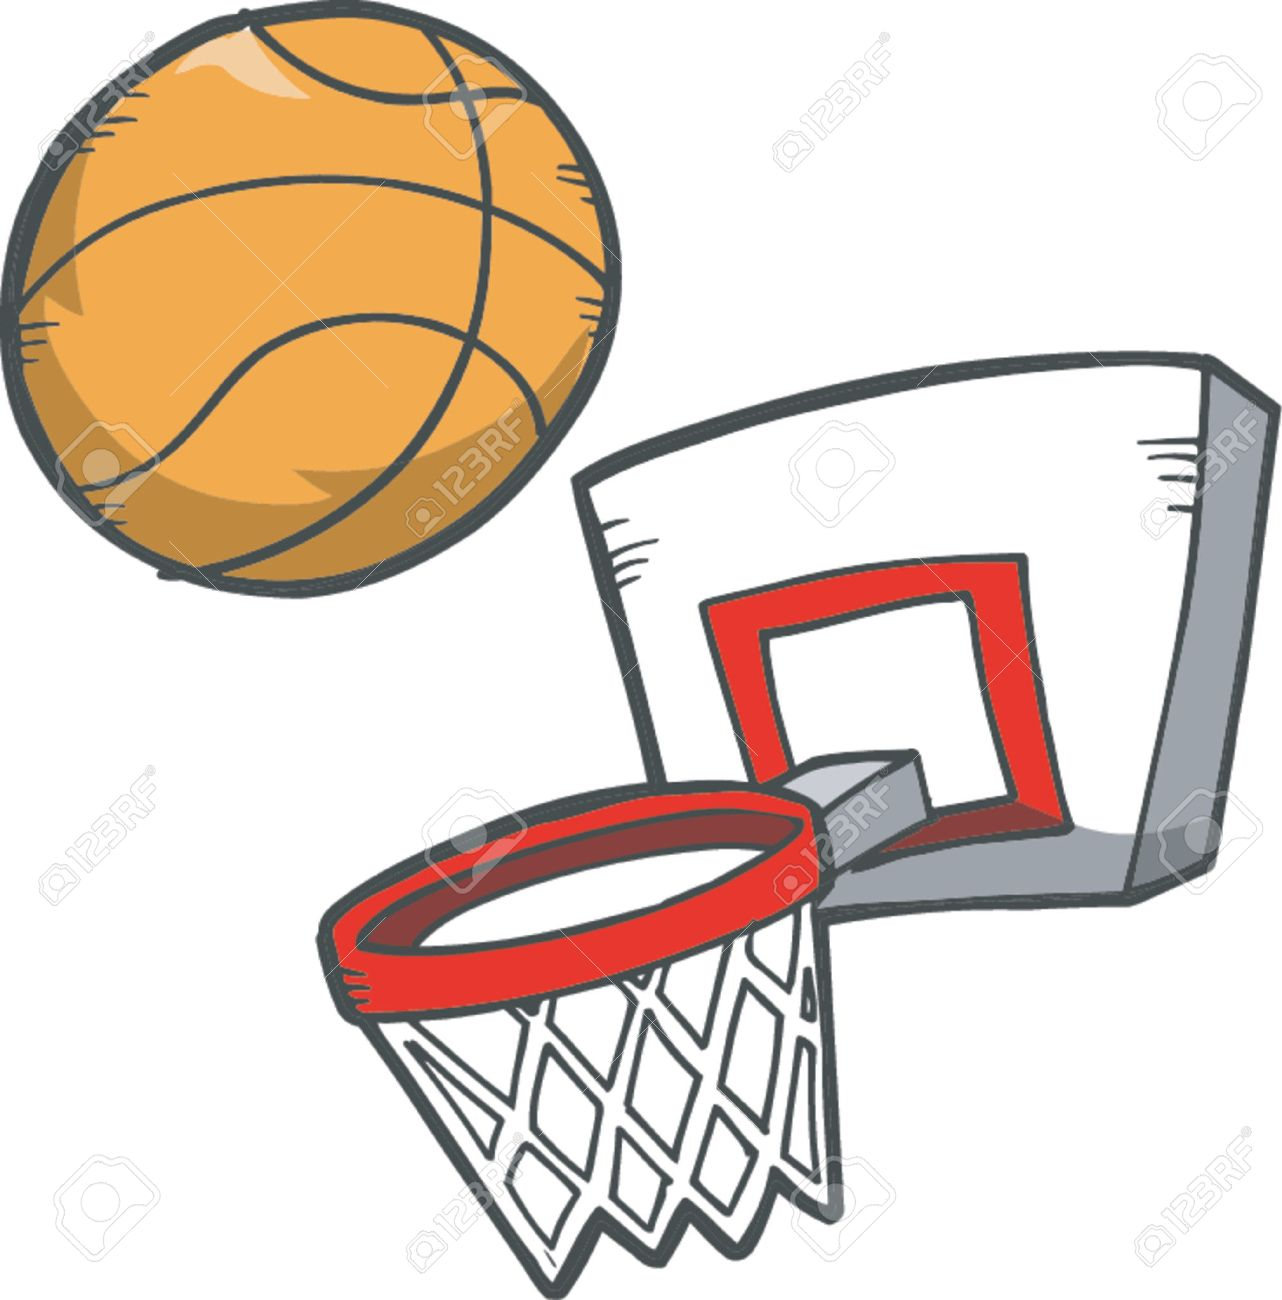 Vector Illustration Of Basketball Basketball Hoop Royalty Free